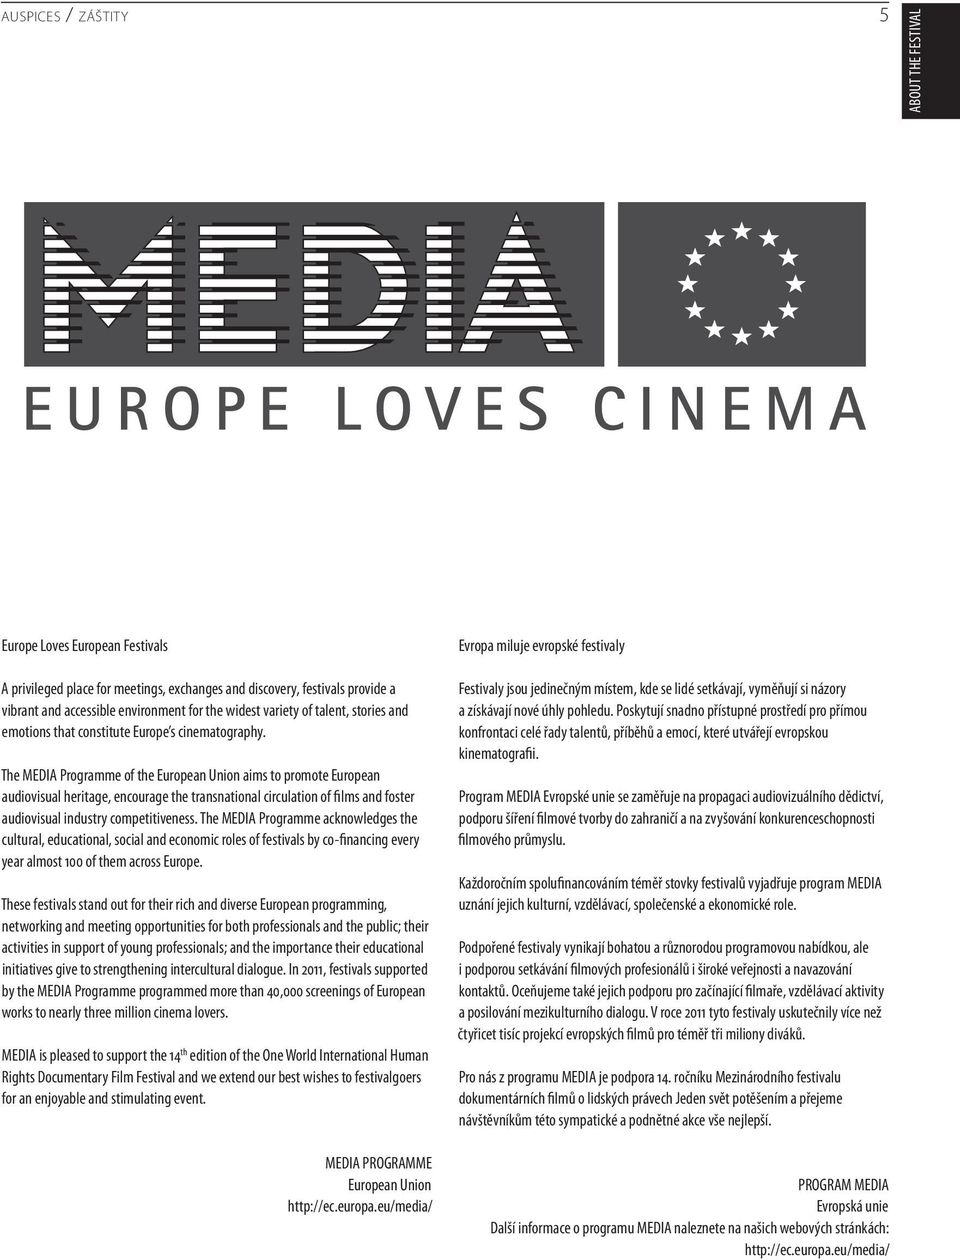 The MEDIA Programme of the European Union aims to promote European audiovisual heritage, encourage the transnational circulation of films and foster audiovisual industry competitiveness.